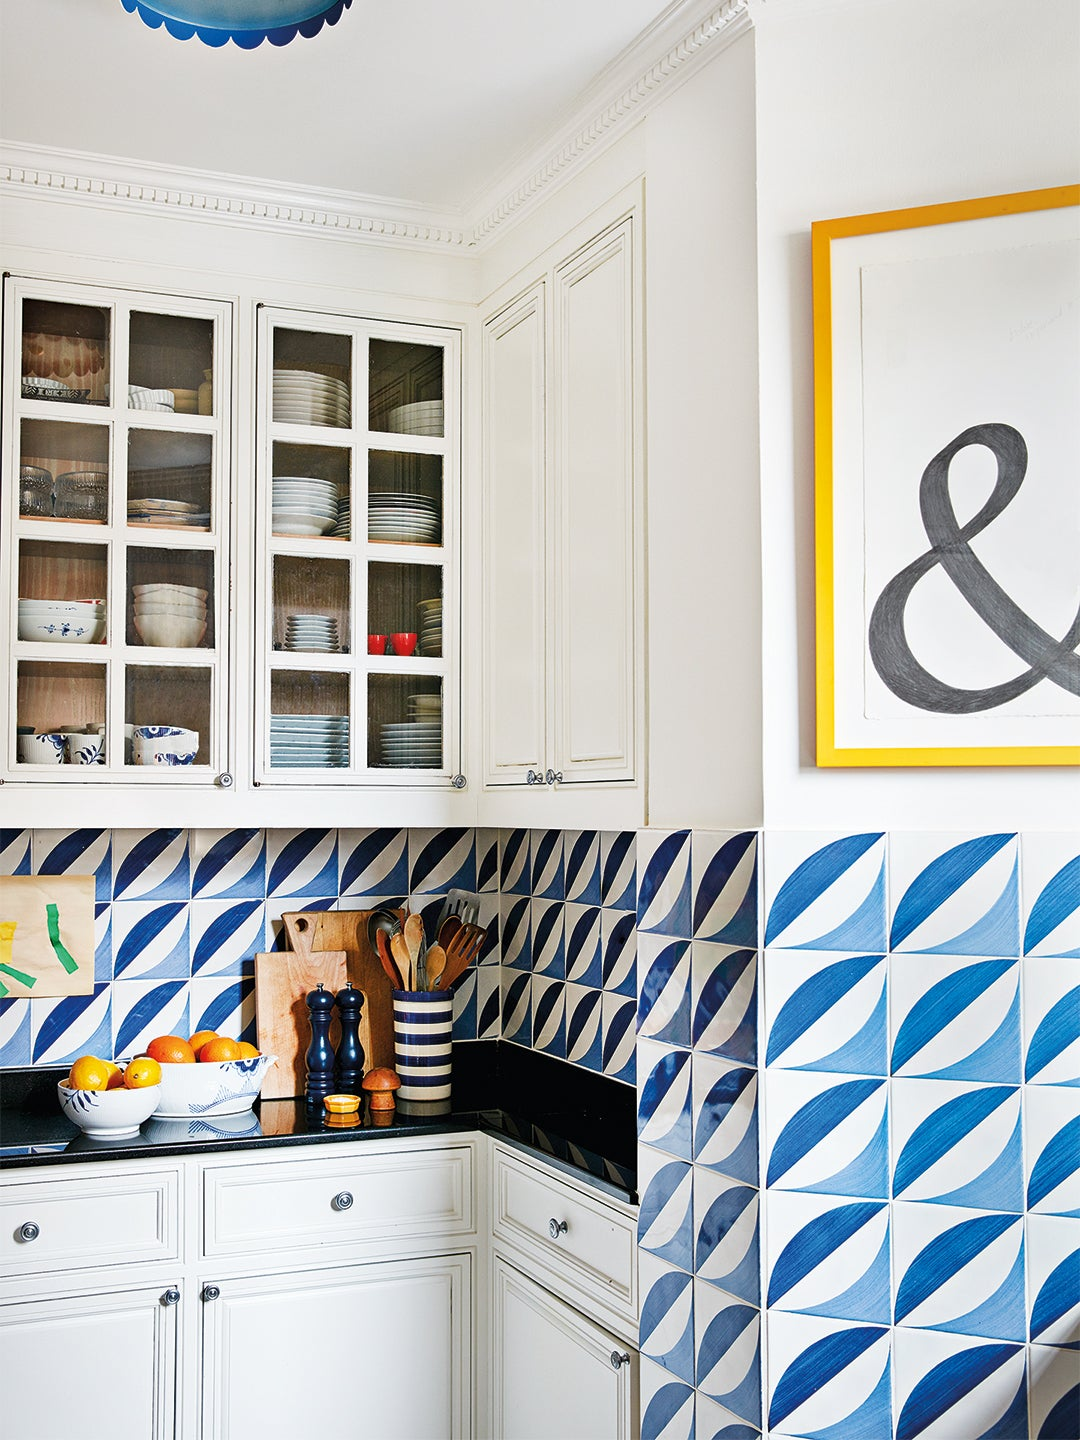 blue and white kitchen with & sign